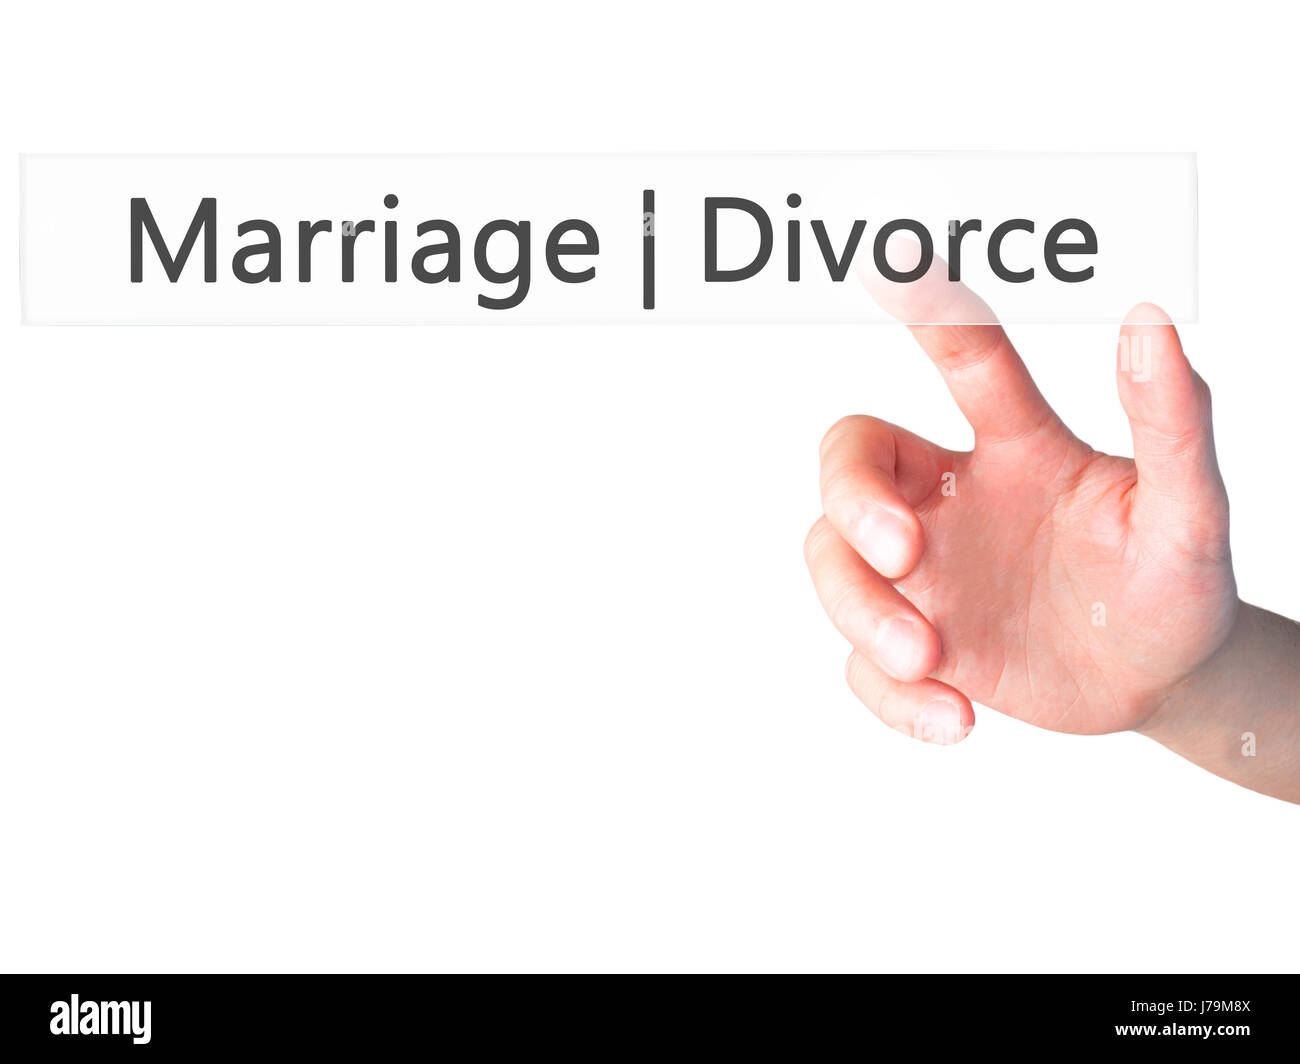 Marriage  Divorce - Hand pressing a button on blurred background concept . Business, technology, internet concept. - Stock Image